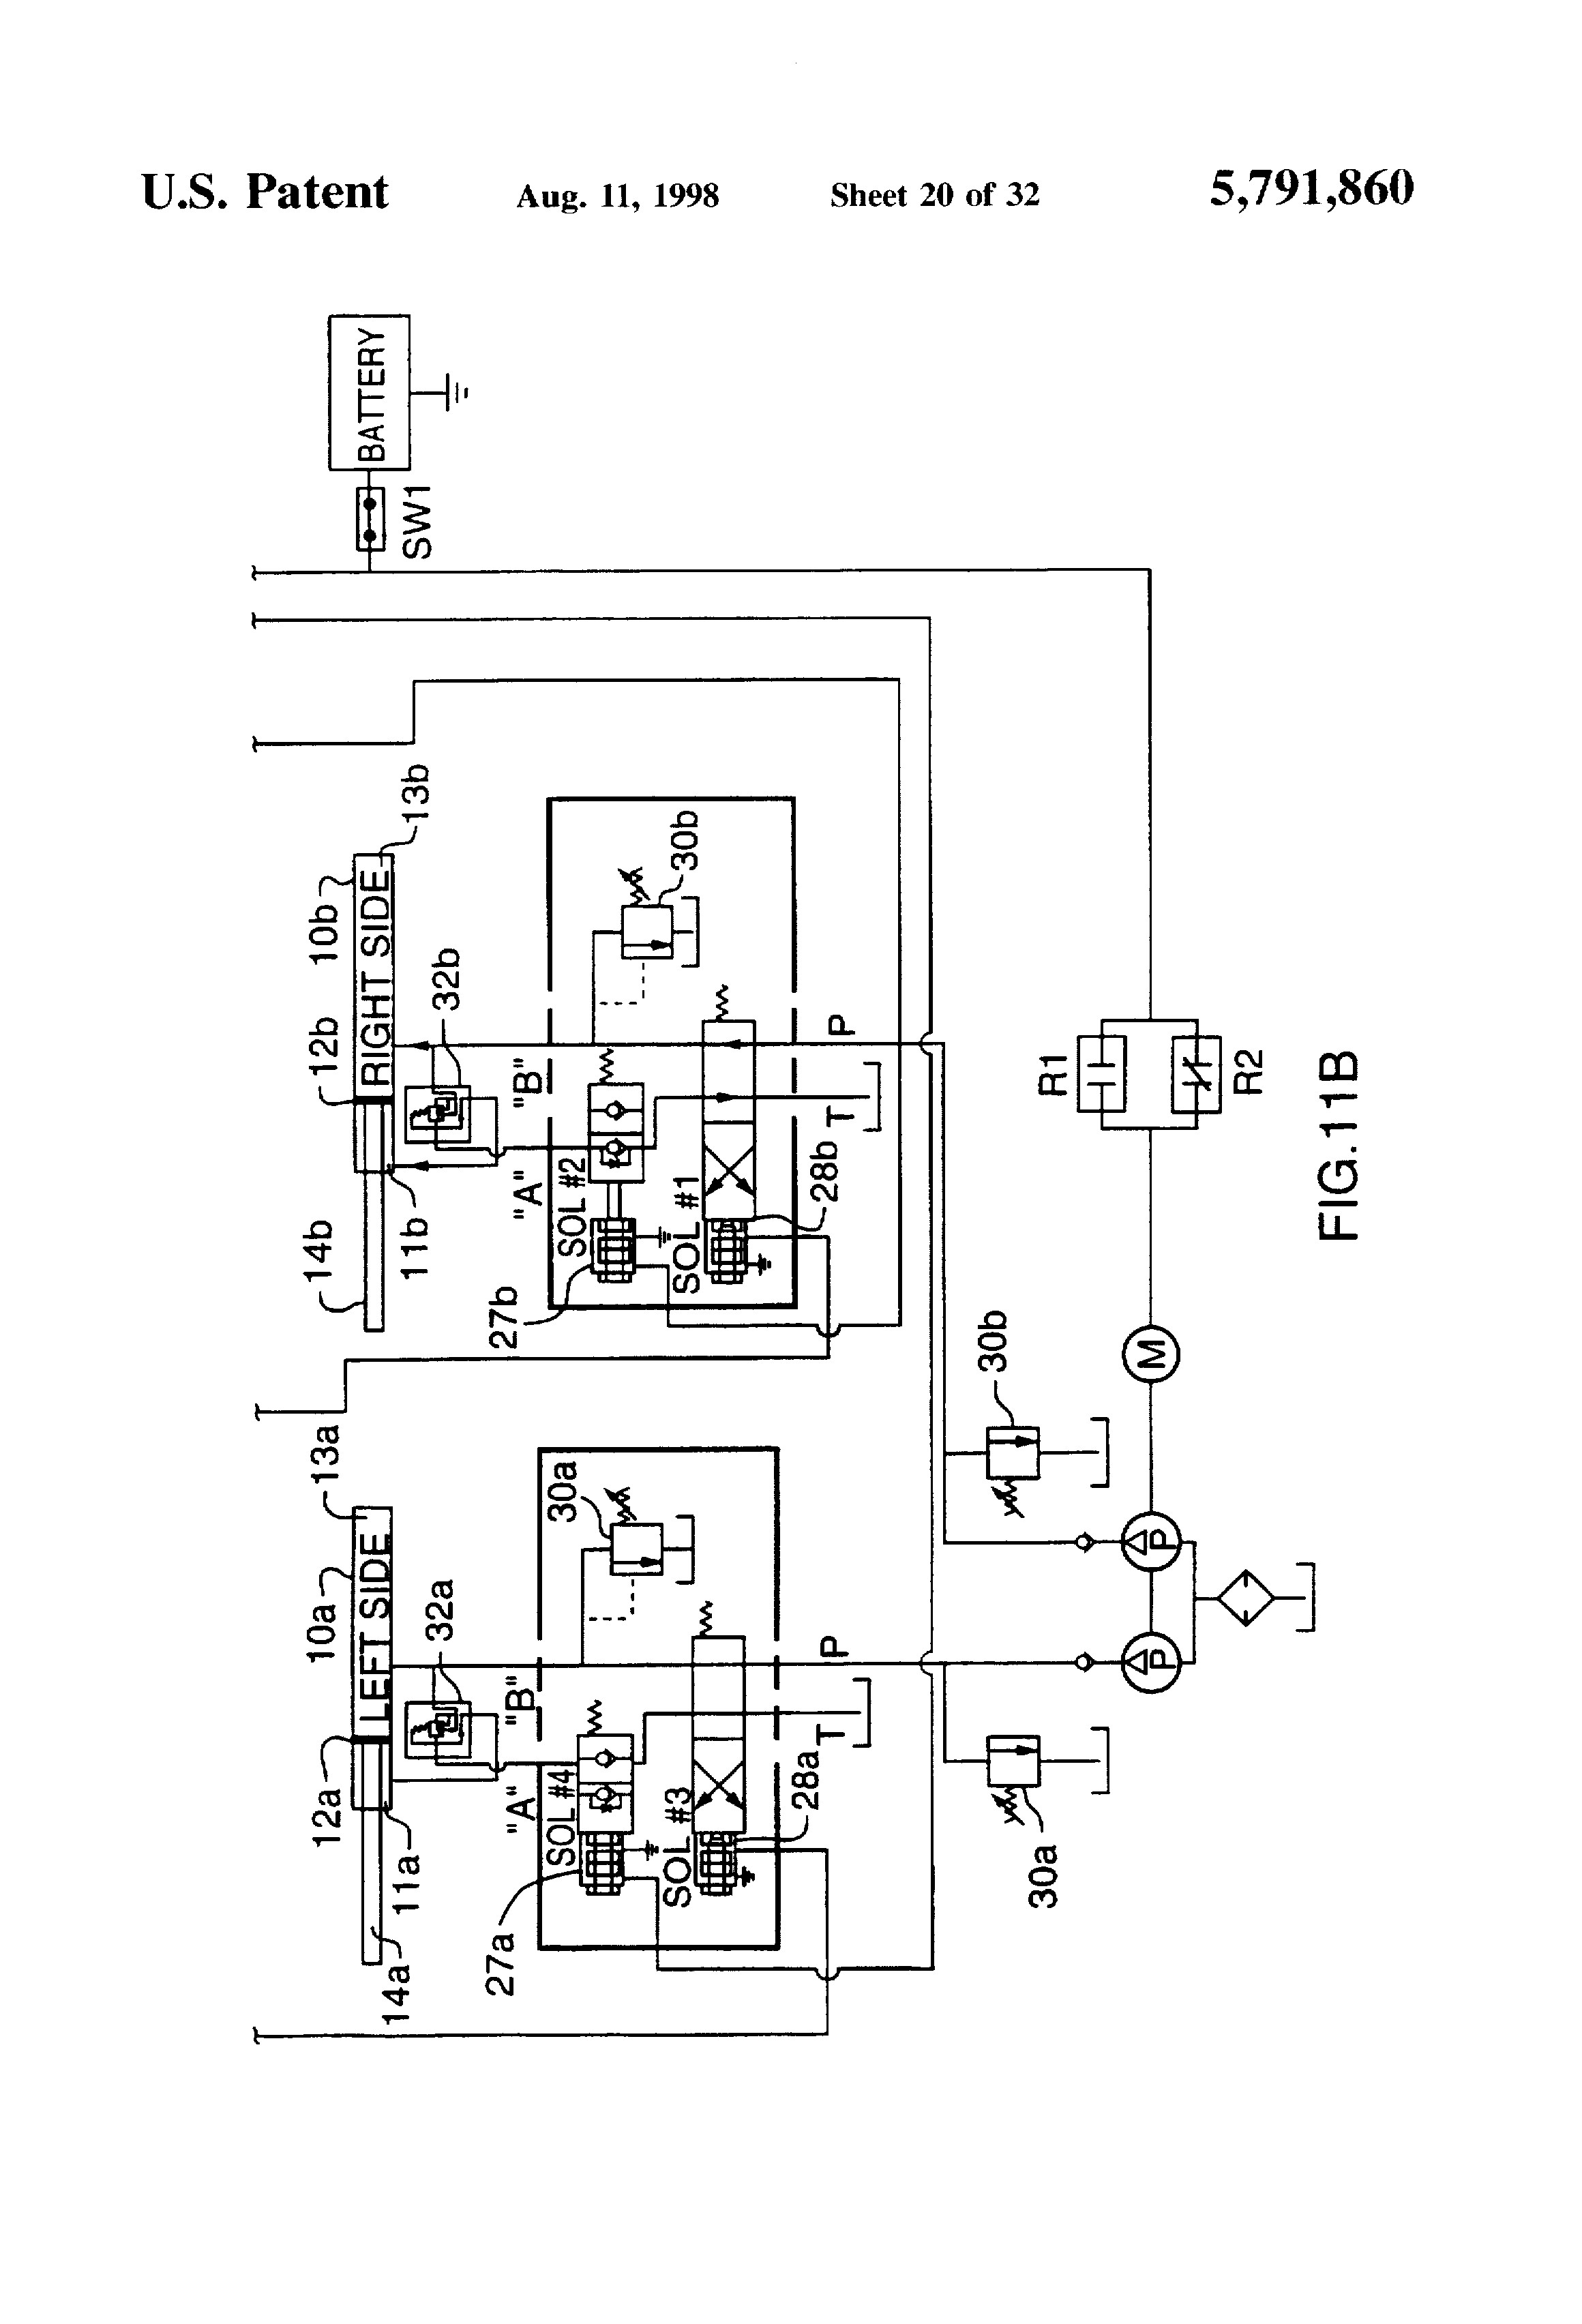 Bunker Hill Security System 95914 20 Fresh Waltco Liftgate Switch Wiring Diagram Of Bunker Hill Security System 95914